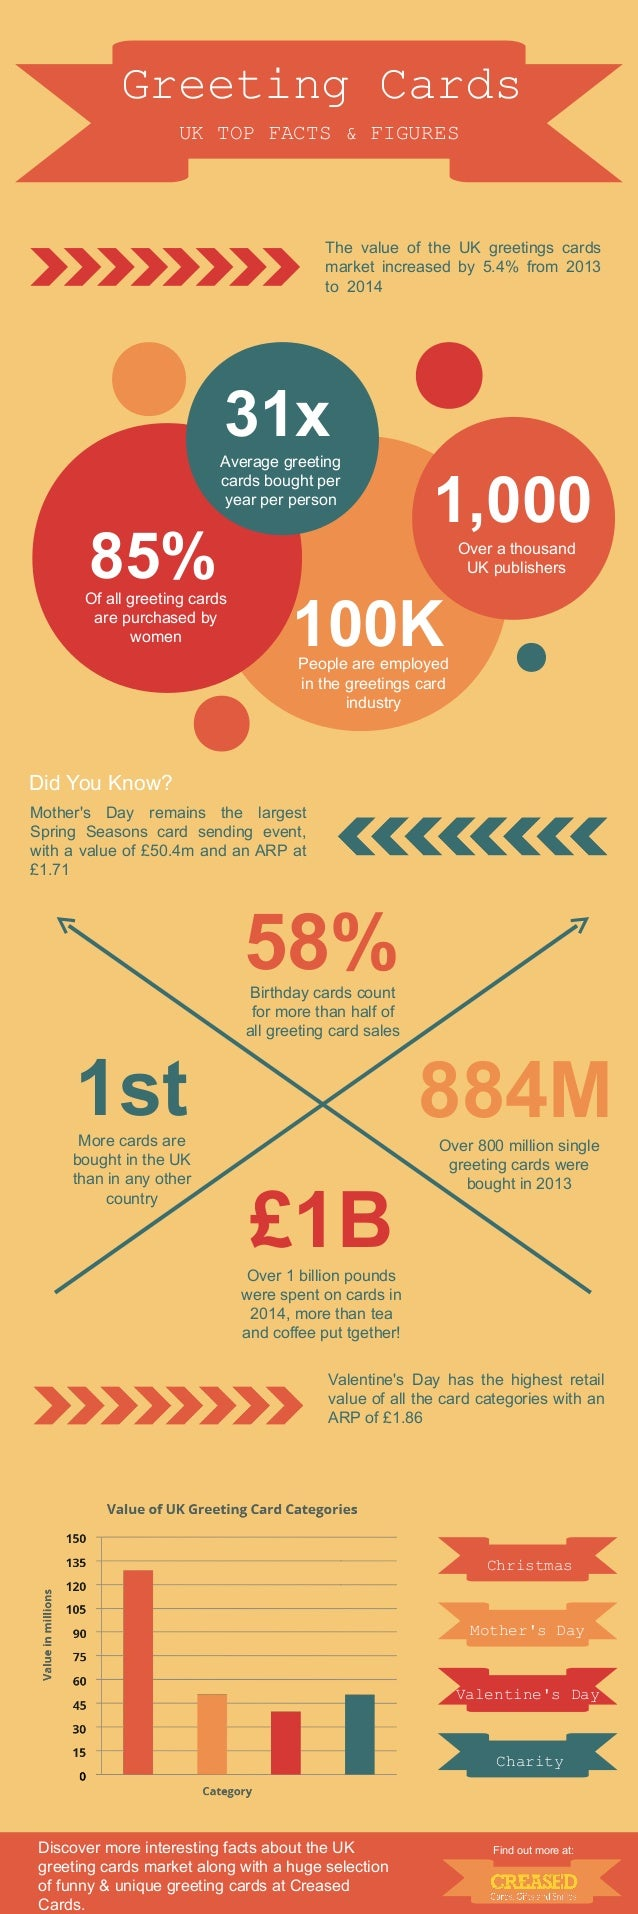 Uk greeting cards an infographic greeting cards the value of the uk greetings cards market increased by 54 from 2013 kristyandbryce Images